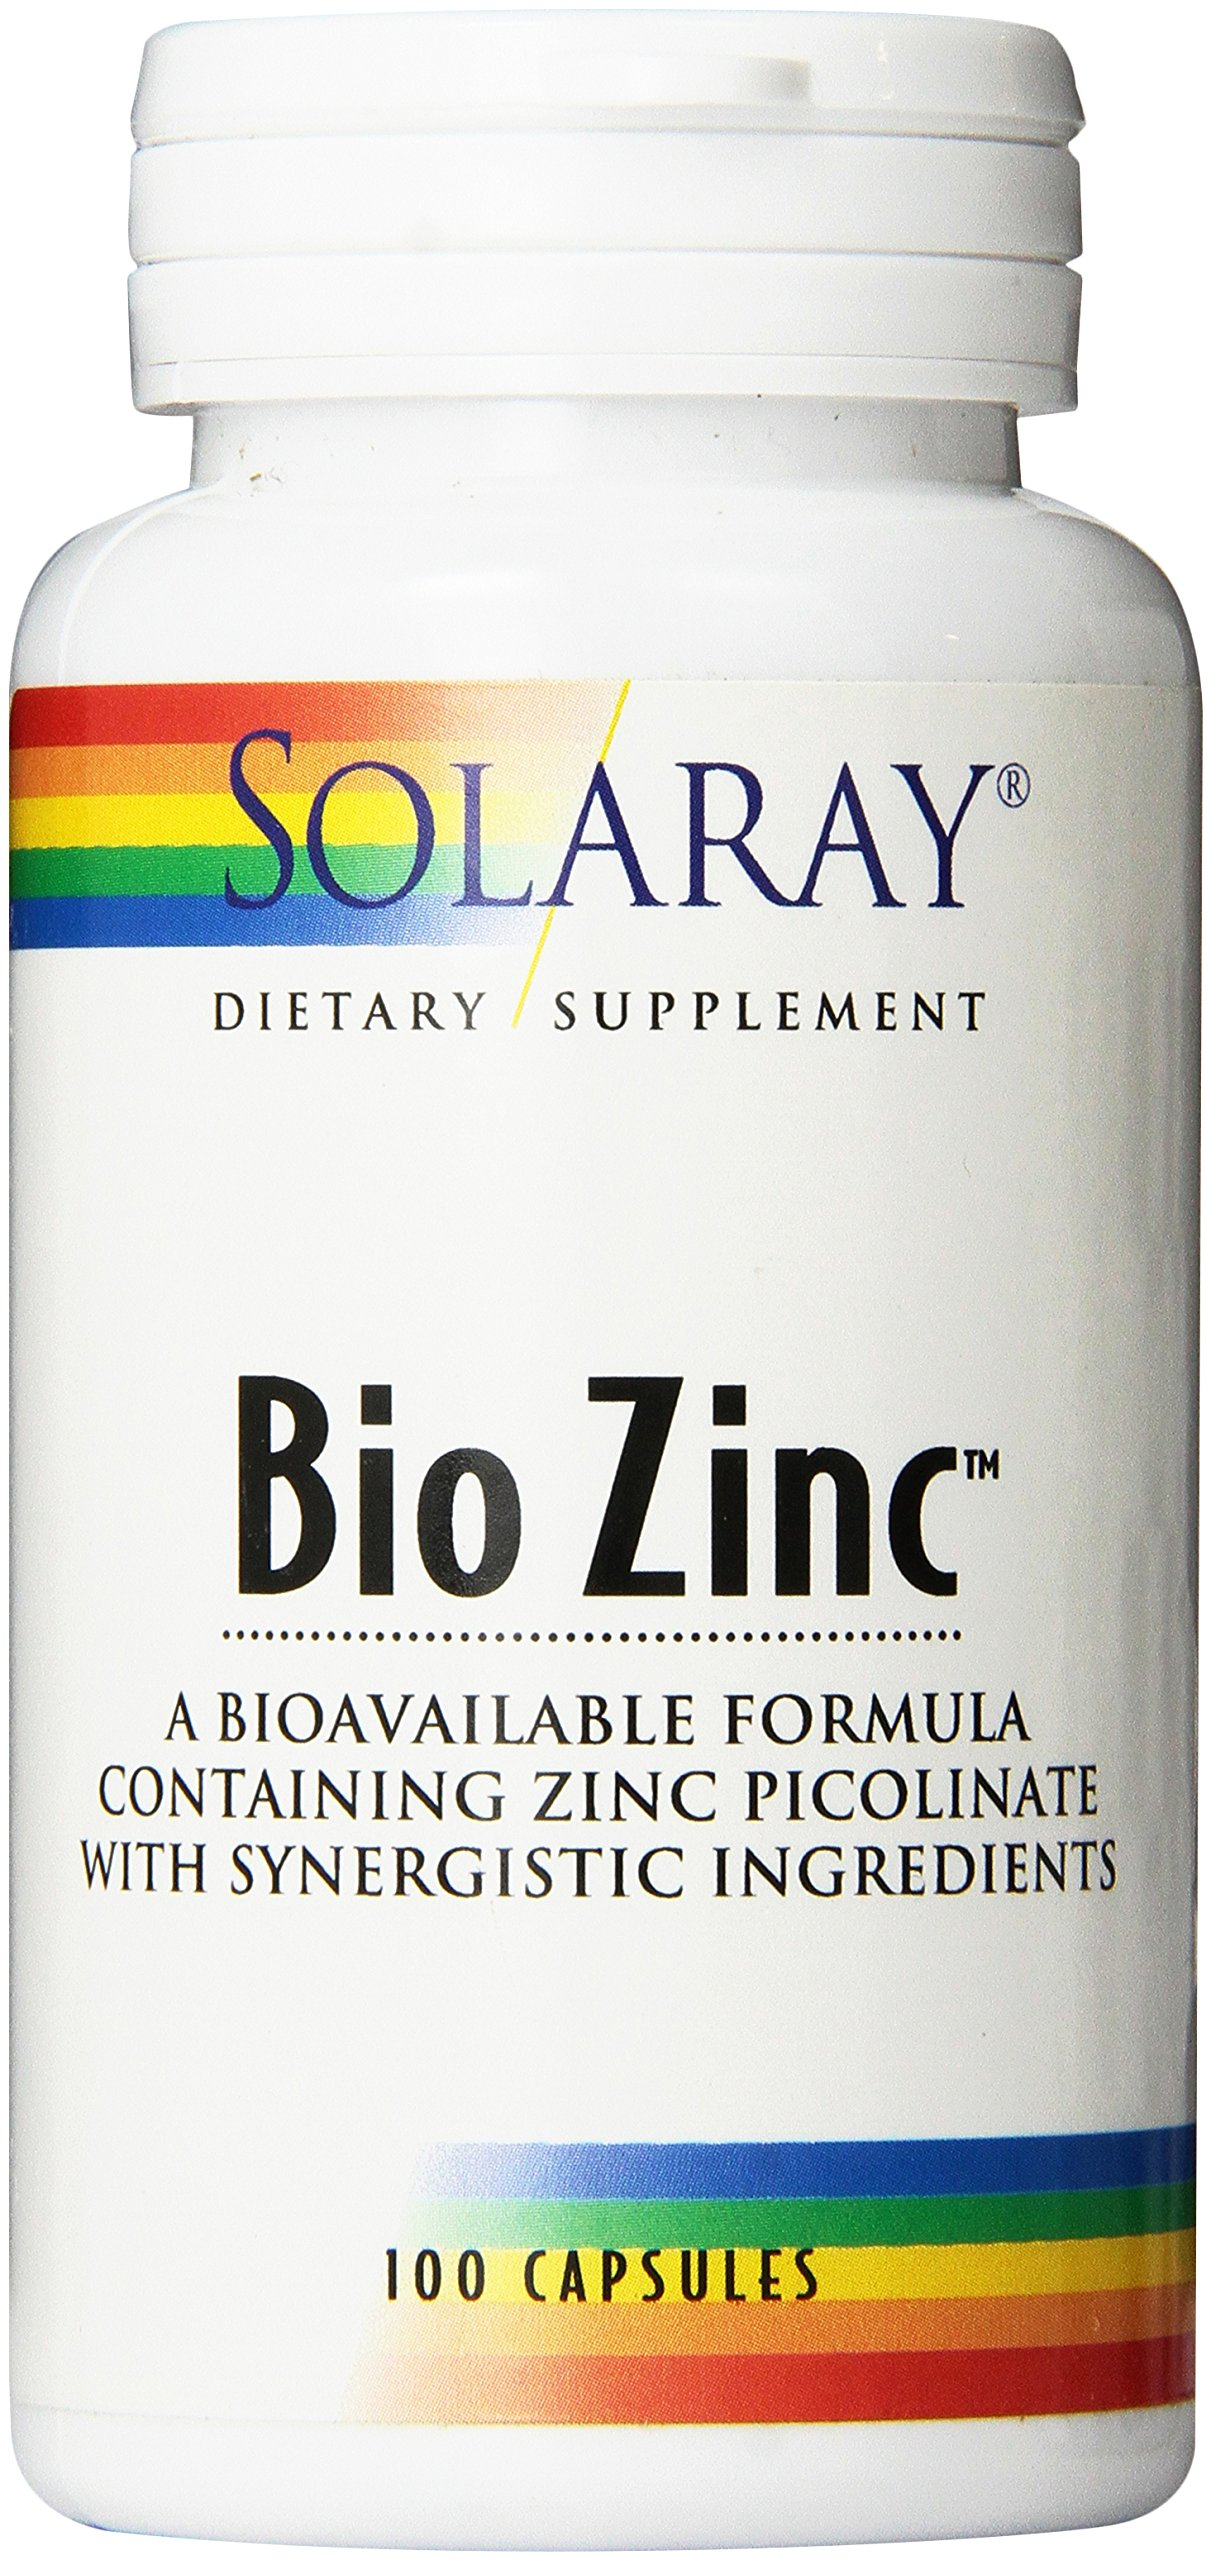 Solaray Bio Zinc Supplement, 15mg, 100 Count